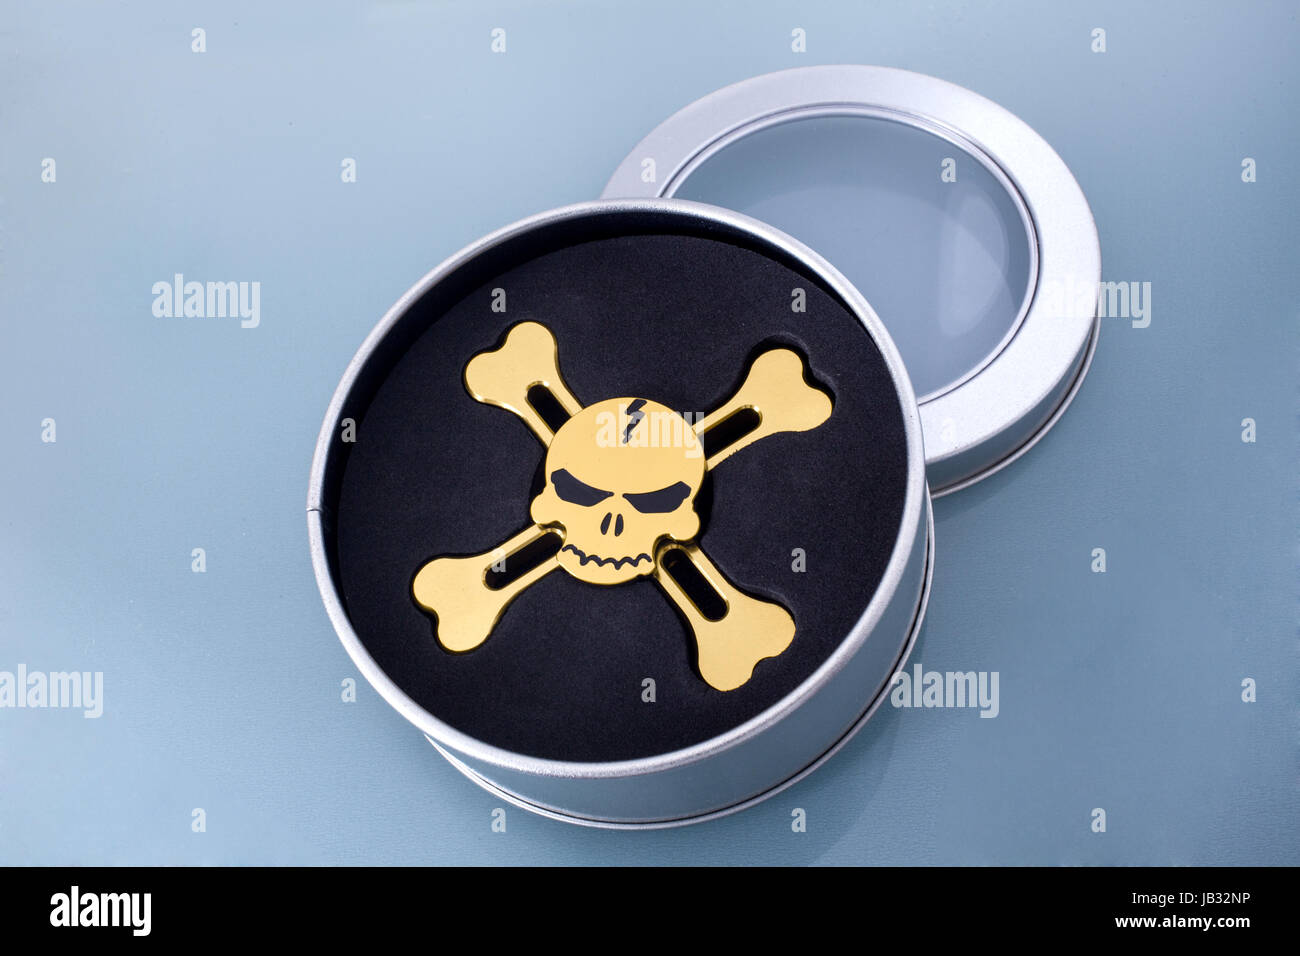 Golden spinner in the form of a skull on a blue background - Stock Image